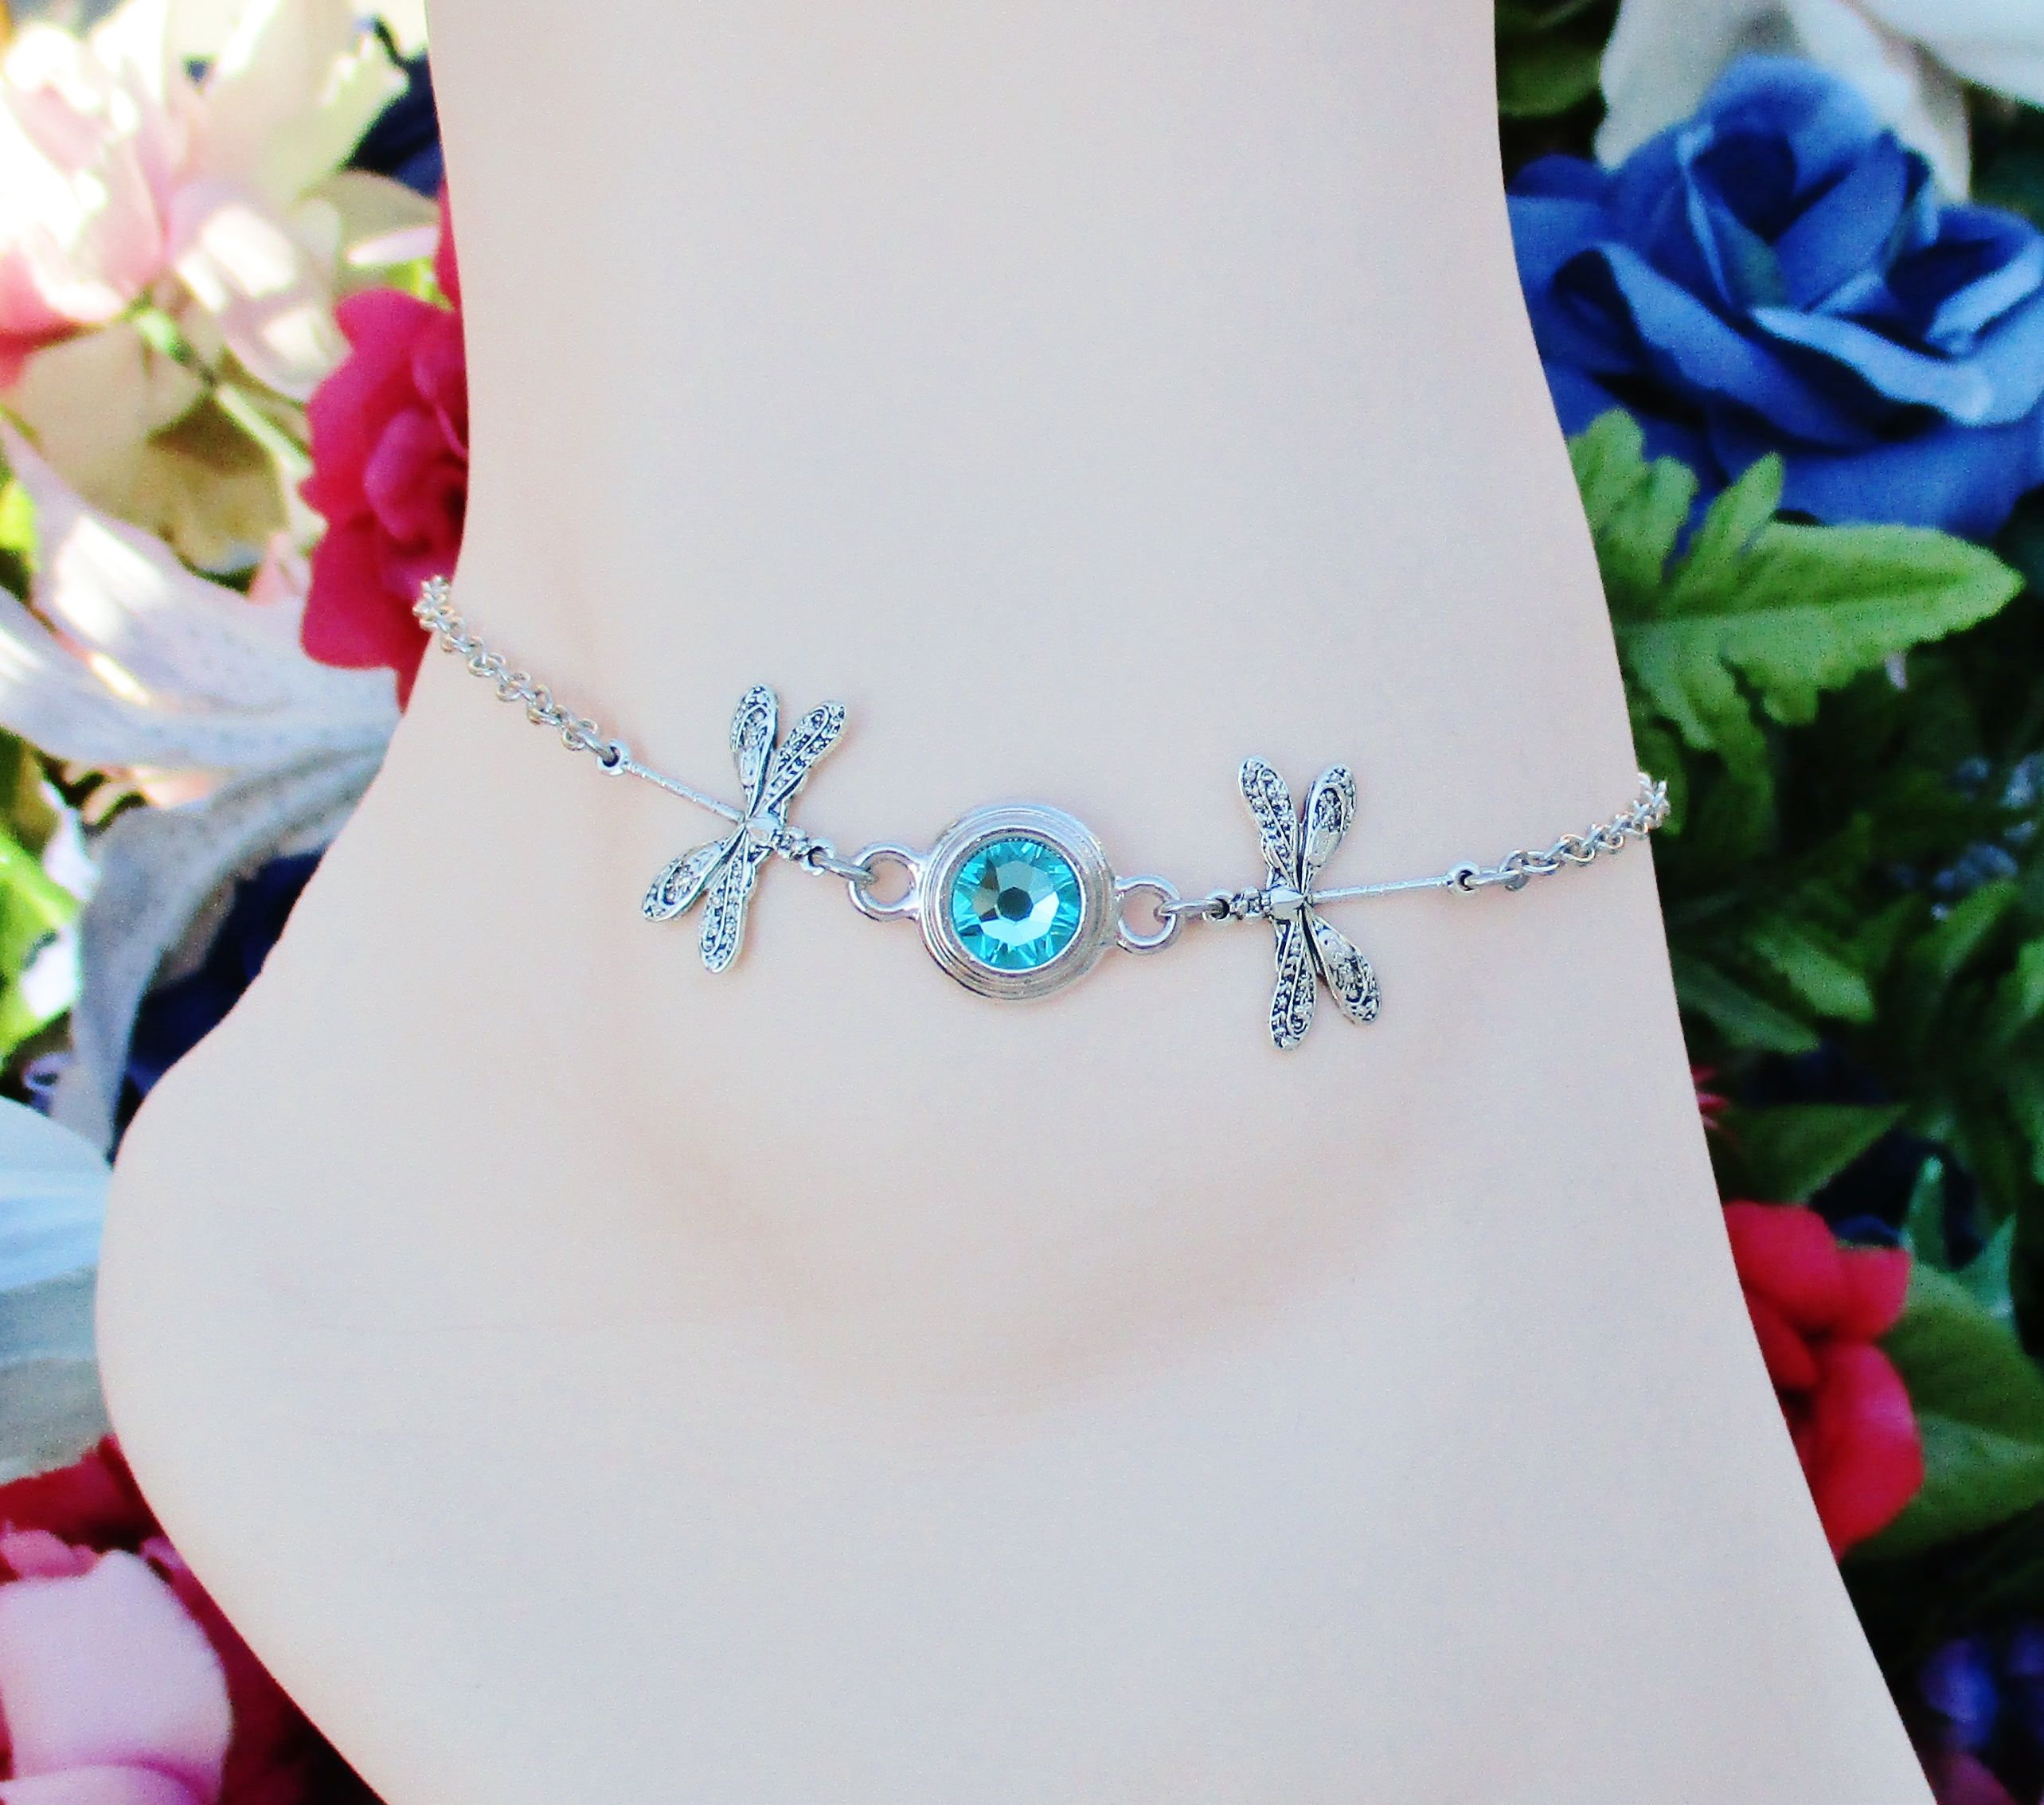 barefoot jewelry want sandal foot silver anklet adjustable bracelets stone ankle pin bracelet chain boho turquoise